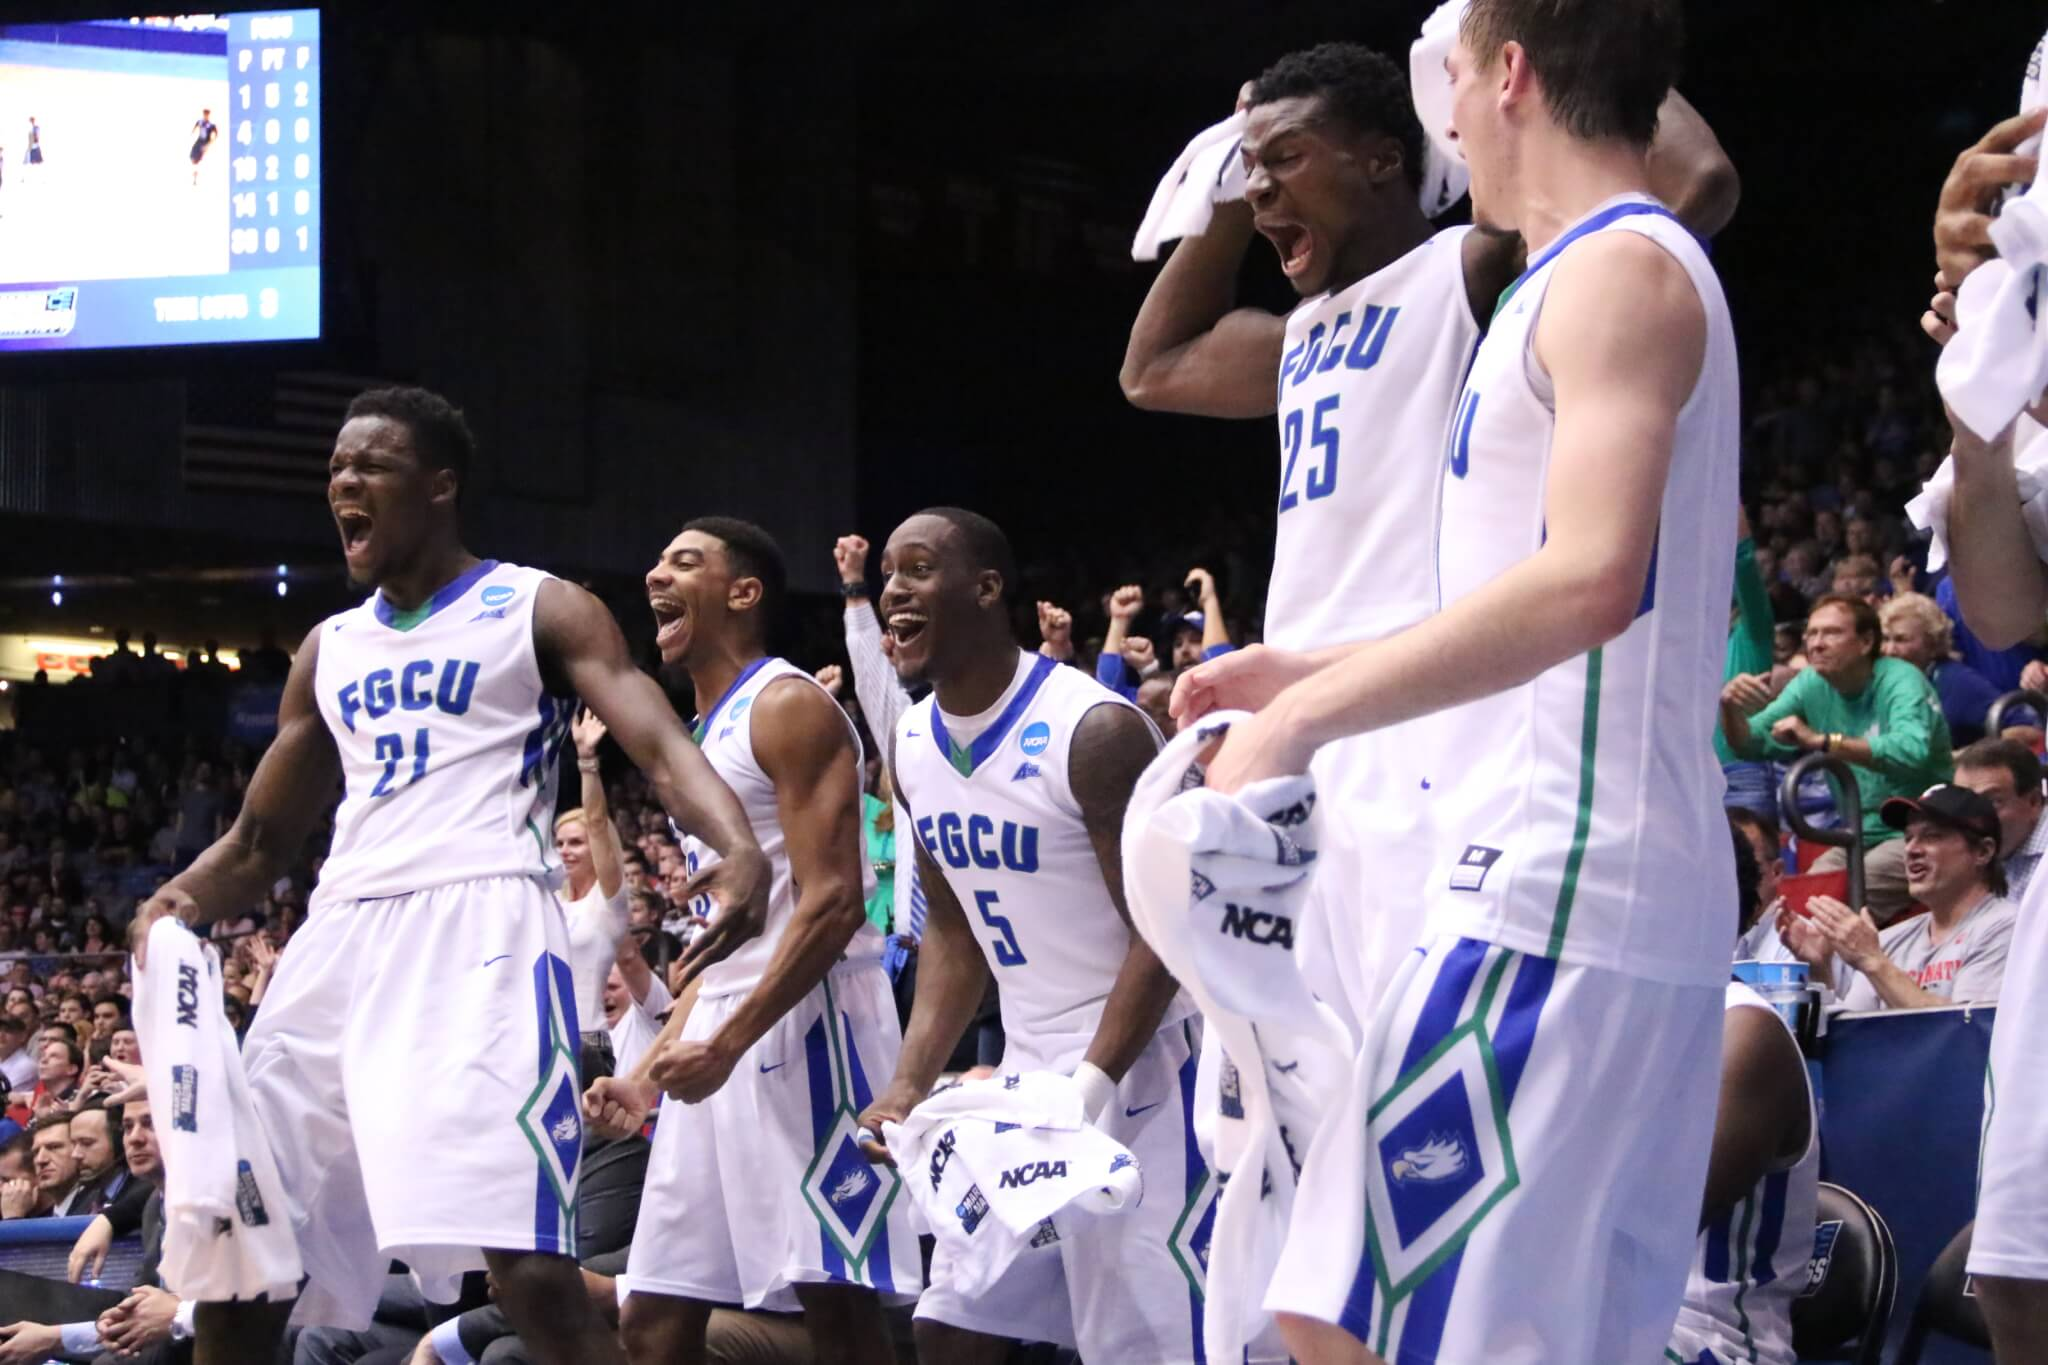 More Madness: FGCU cruises past FDU, set to face UNC next in NCAA play